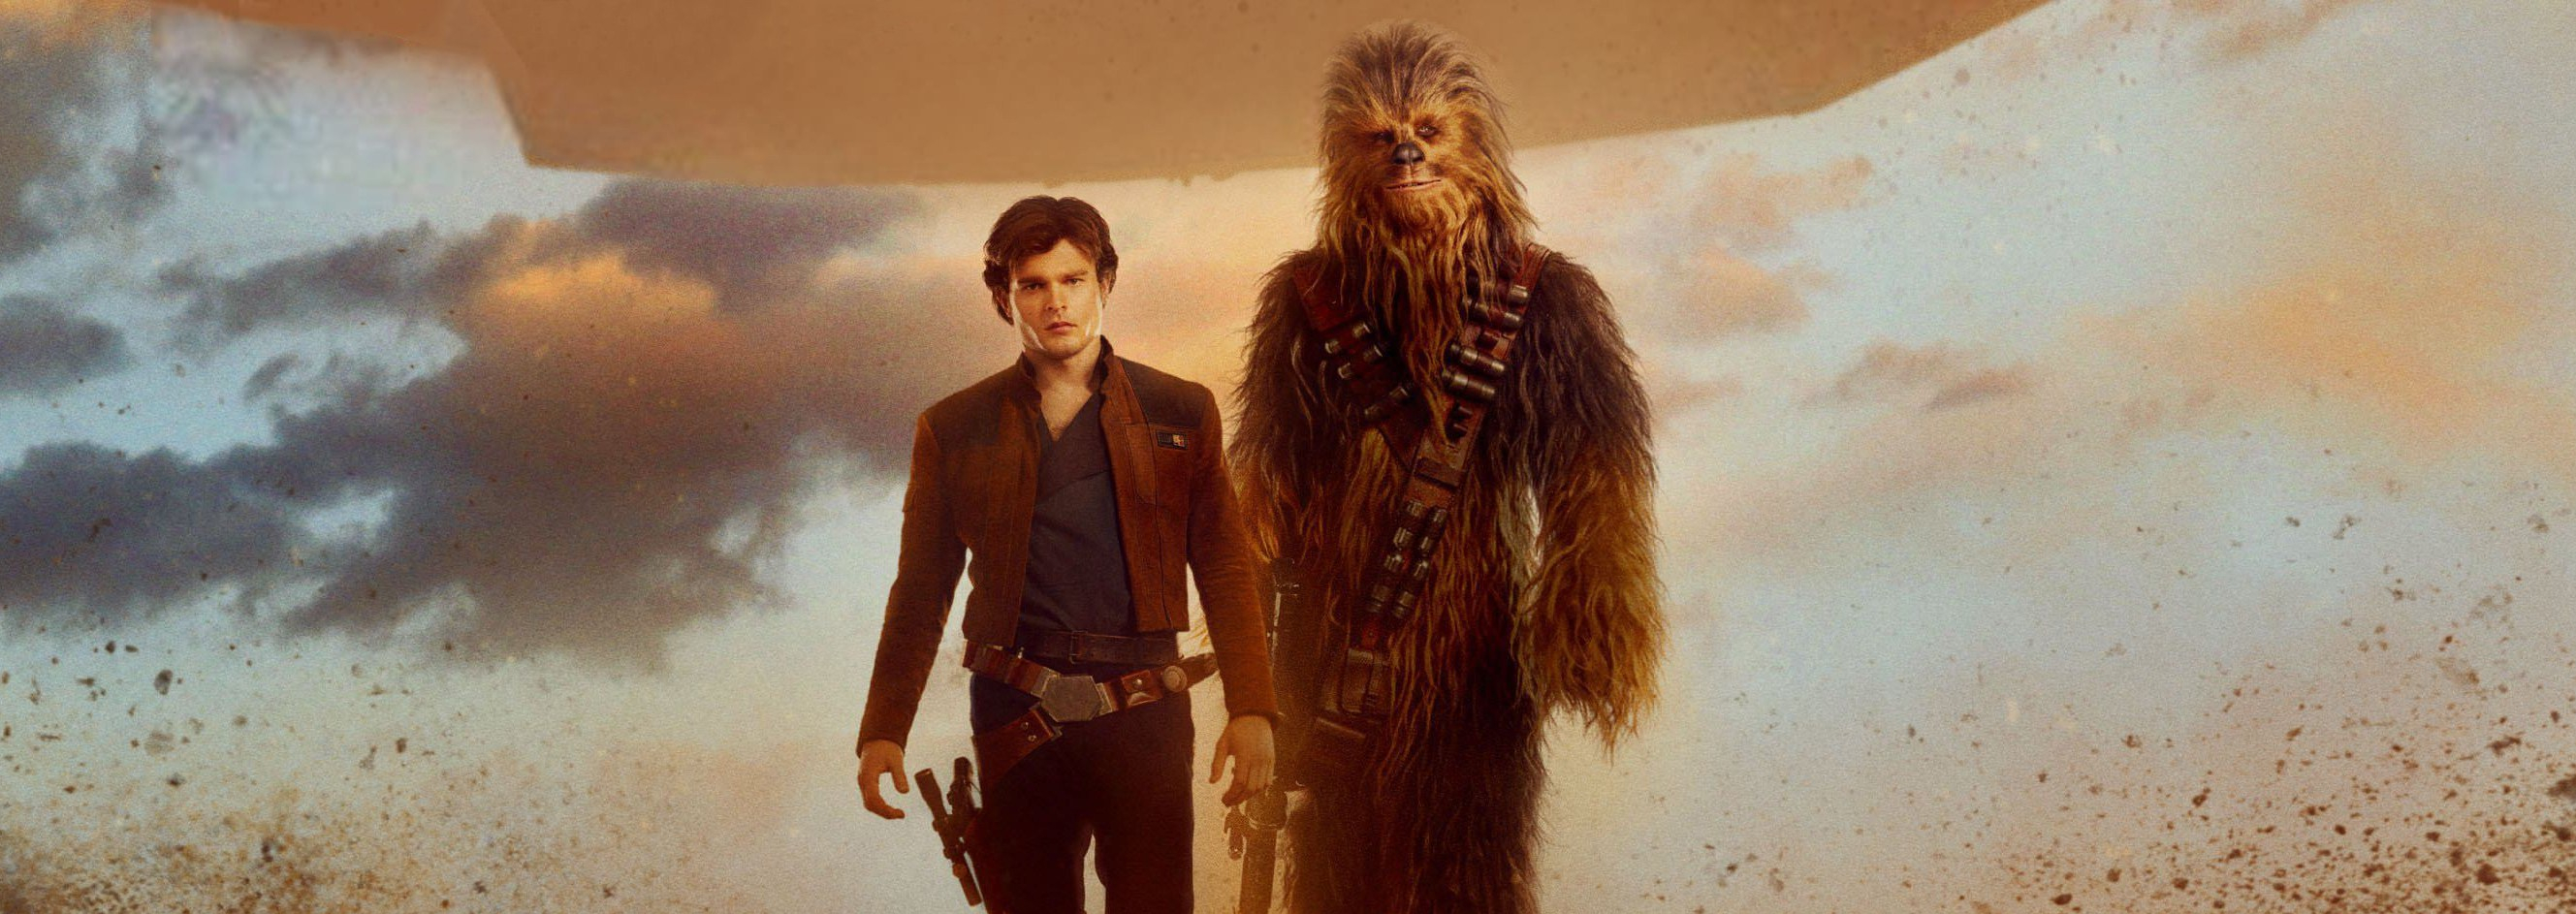 han-solo-and-chewbacca-solo-a-star-wars-story-ul